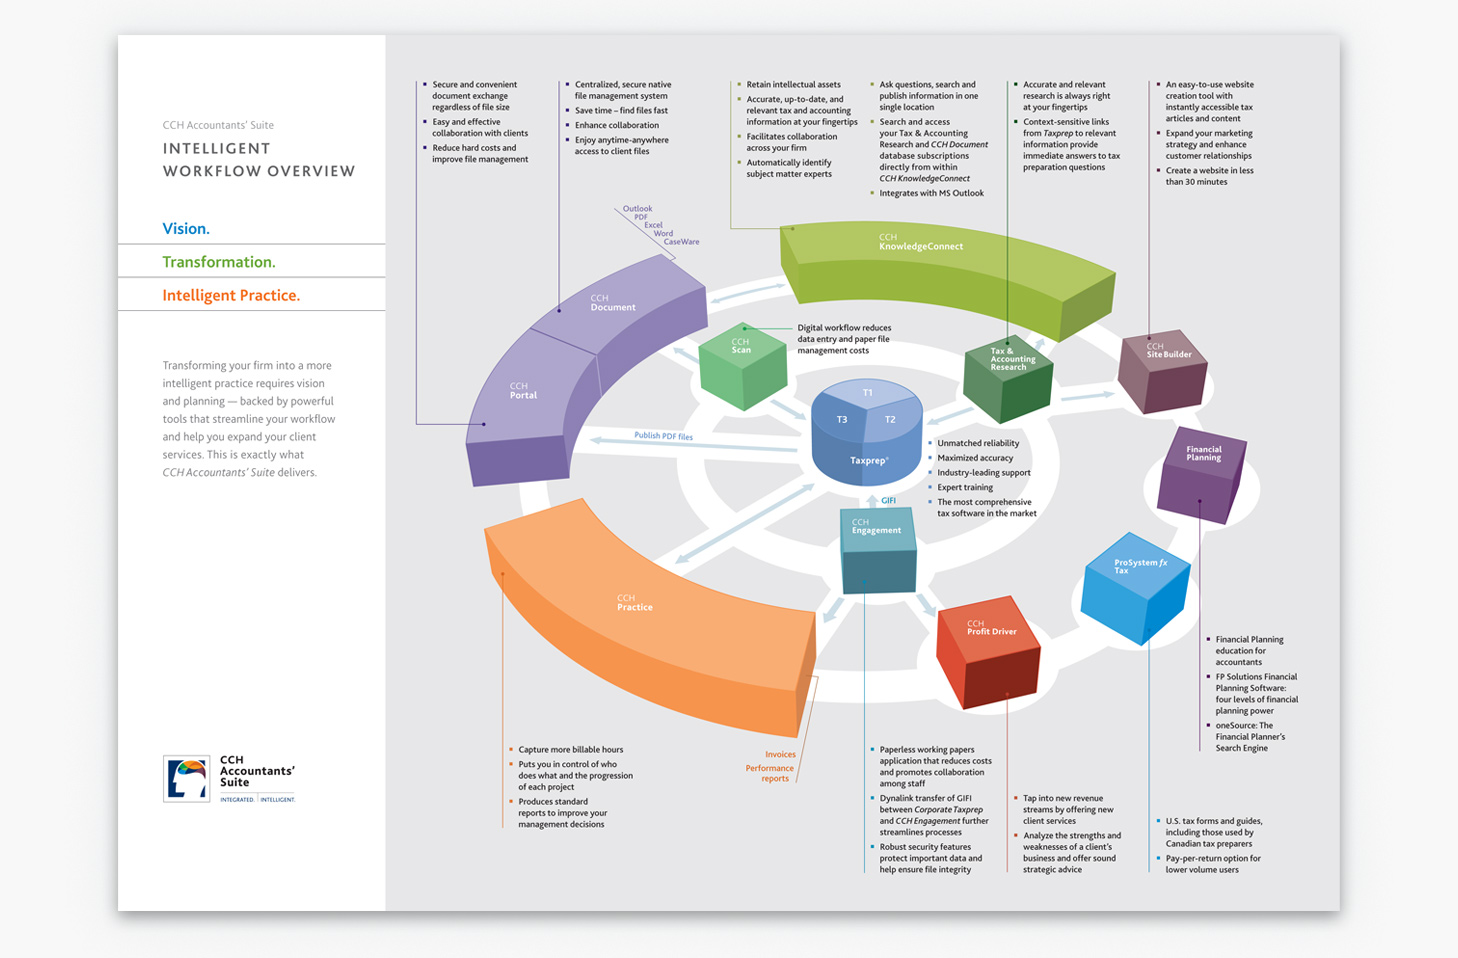 CCH Accountants' Suite product workflow overview.